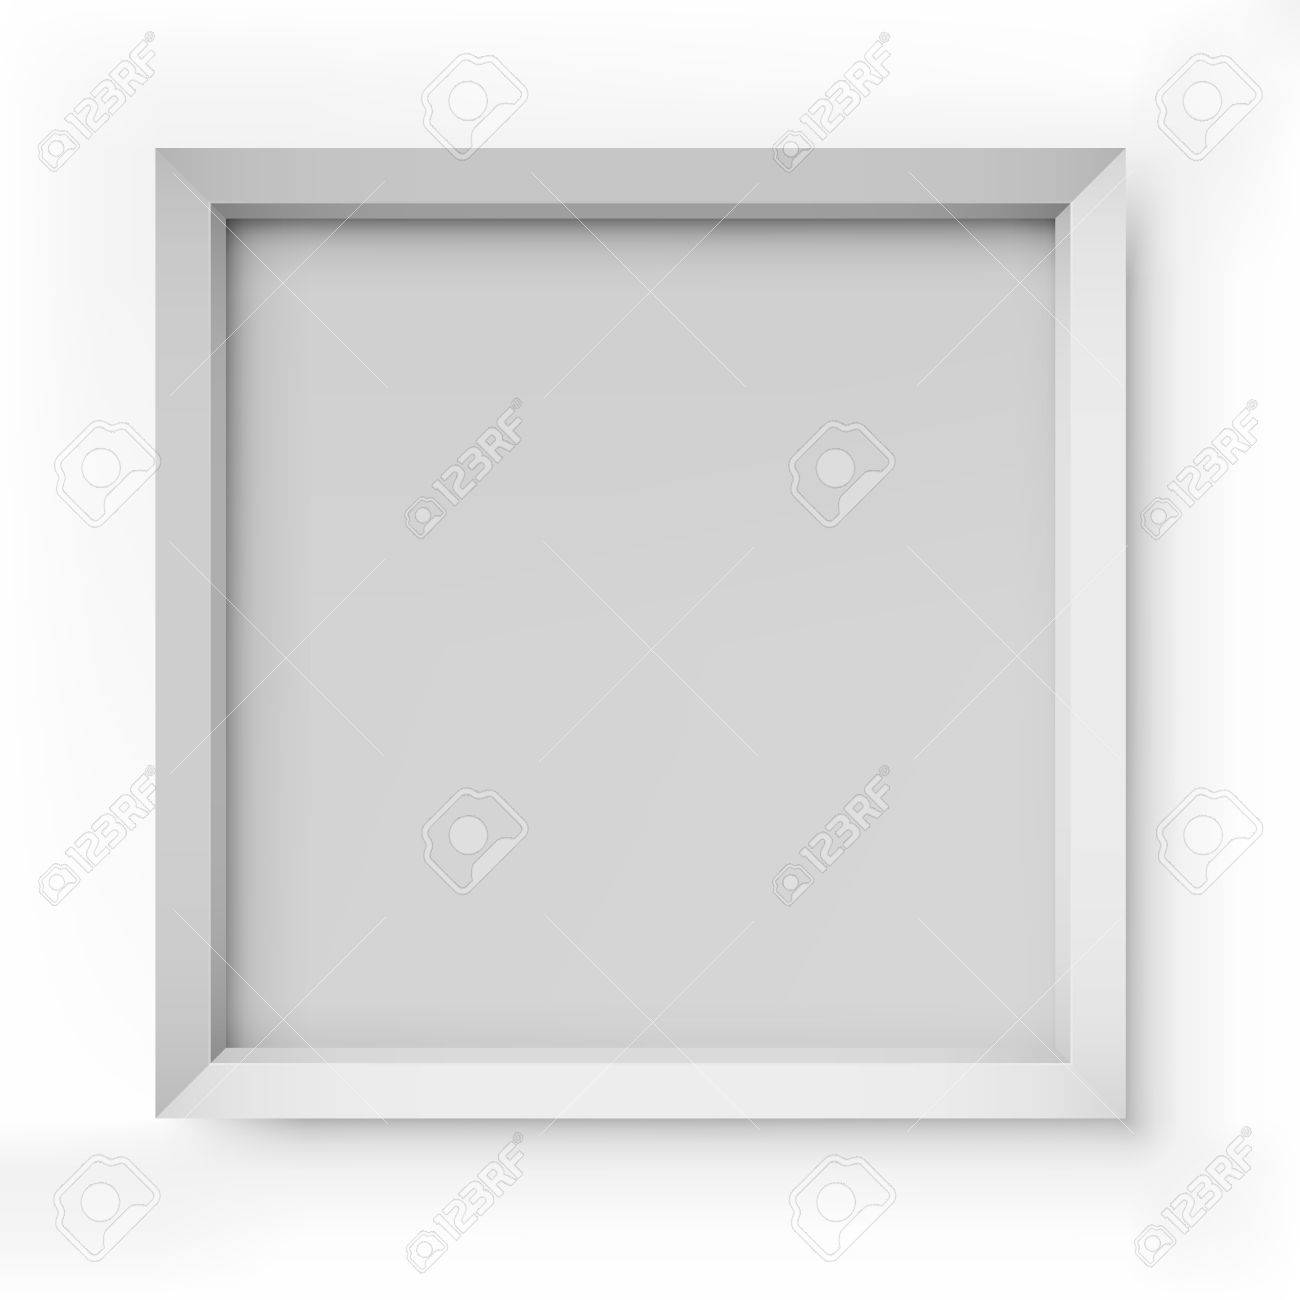 Blank white picture frame isolated on white background vector template Stock Vector - 19375863